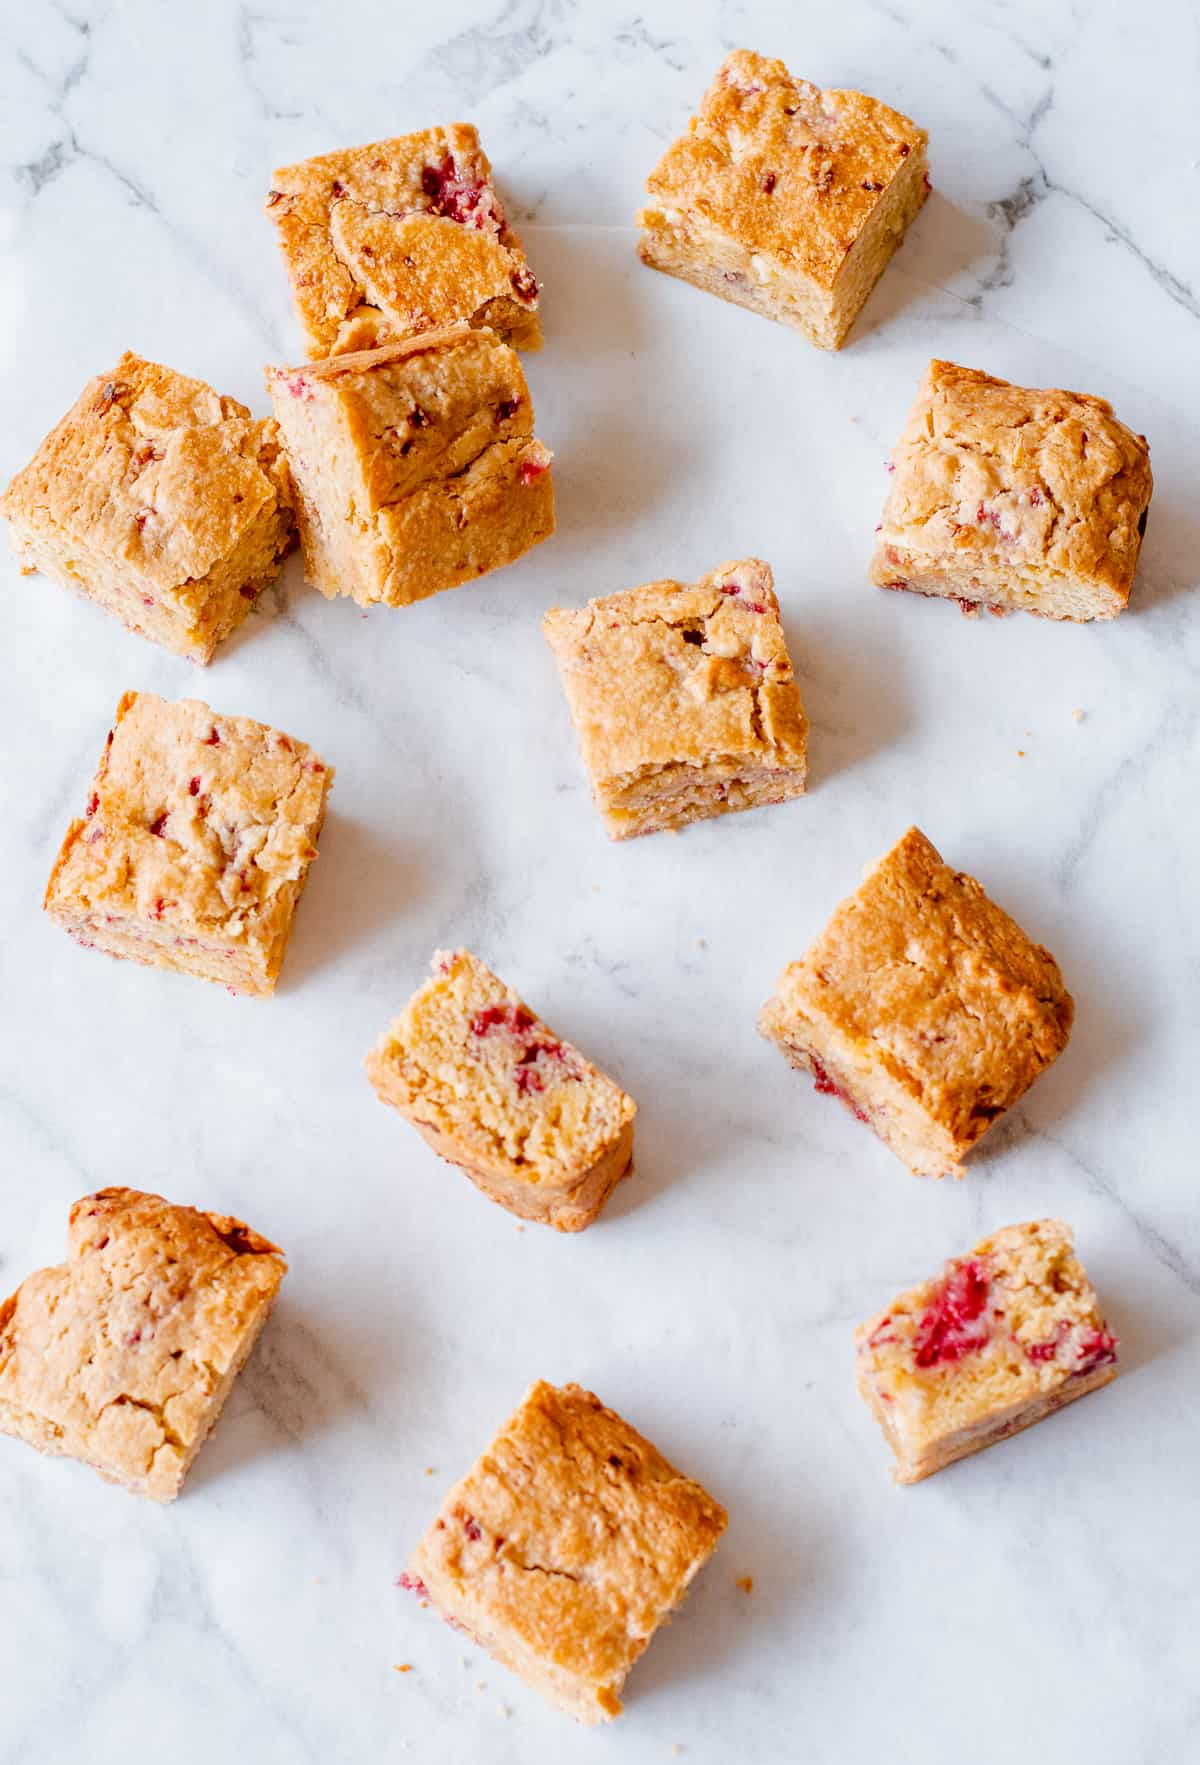 white chocolate and rasberry blondies on a white background